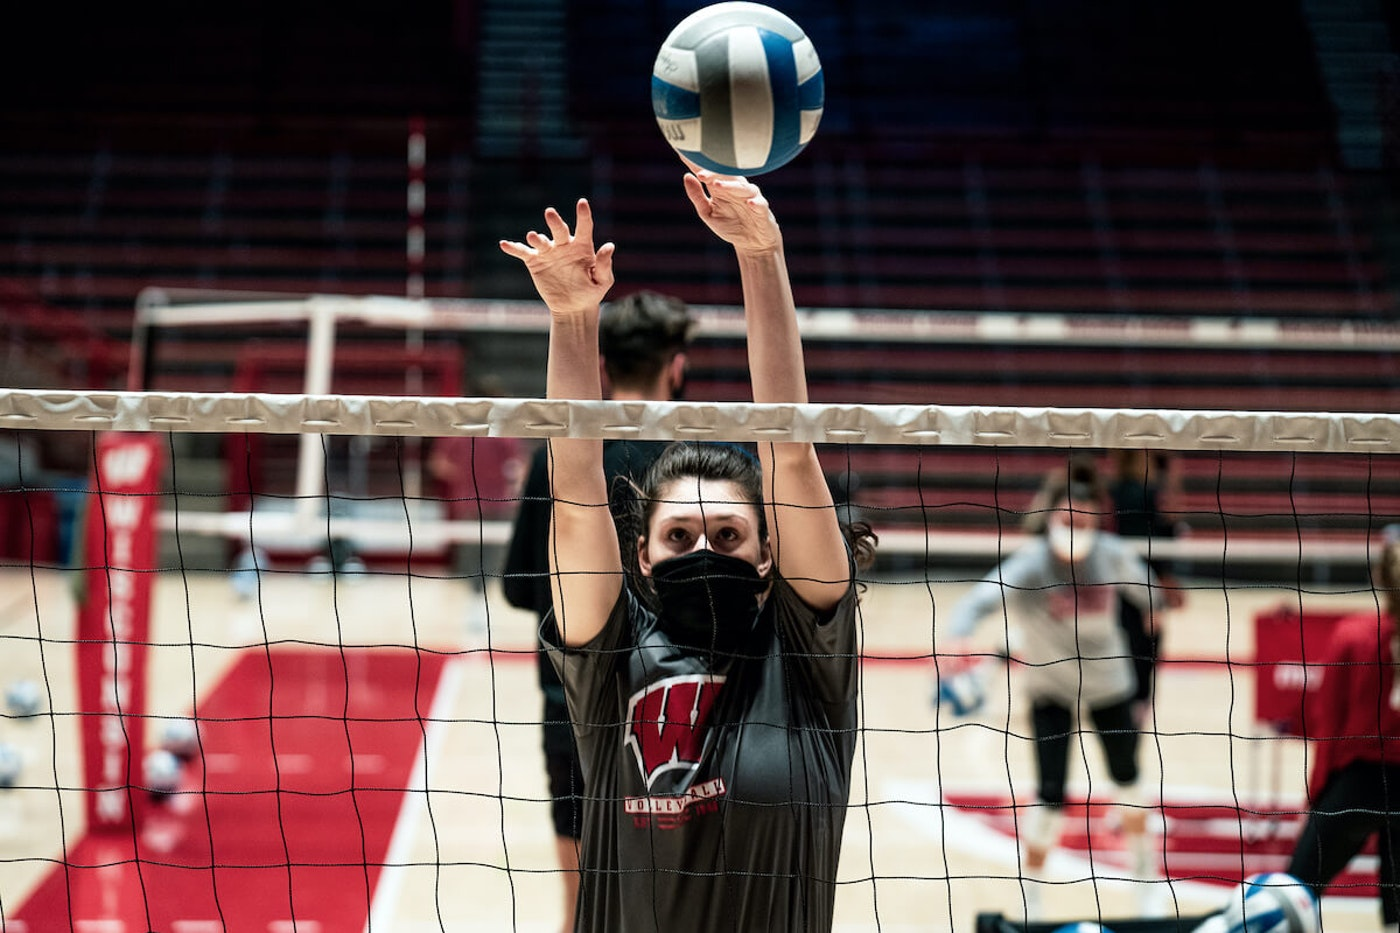 Wisconsin volleyball player Dana Rettke goes up for a block during a Badgers practice at the UW Field House. Rettke, a senior three-time All-American, would have competed with the U.S. national team over the summer in hopes of earning a spot on the U.S. Olympic team. (Photo by Bianca Miceli for UW Athletics)